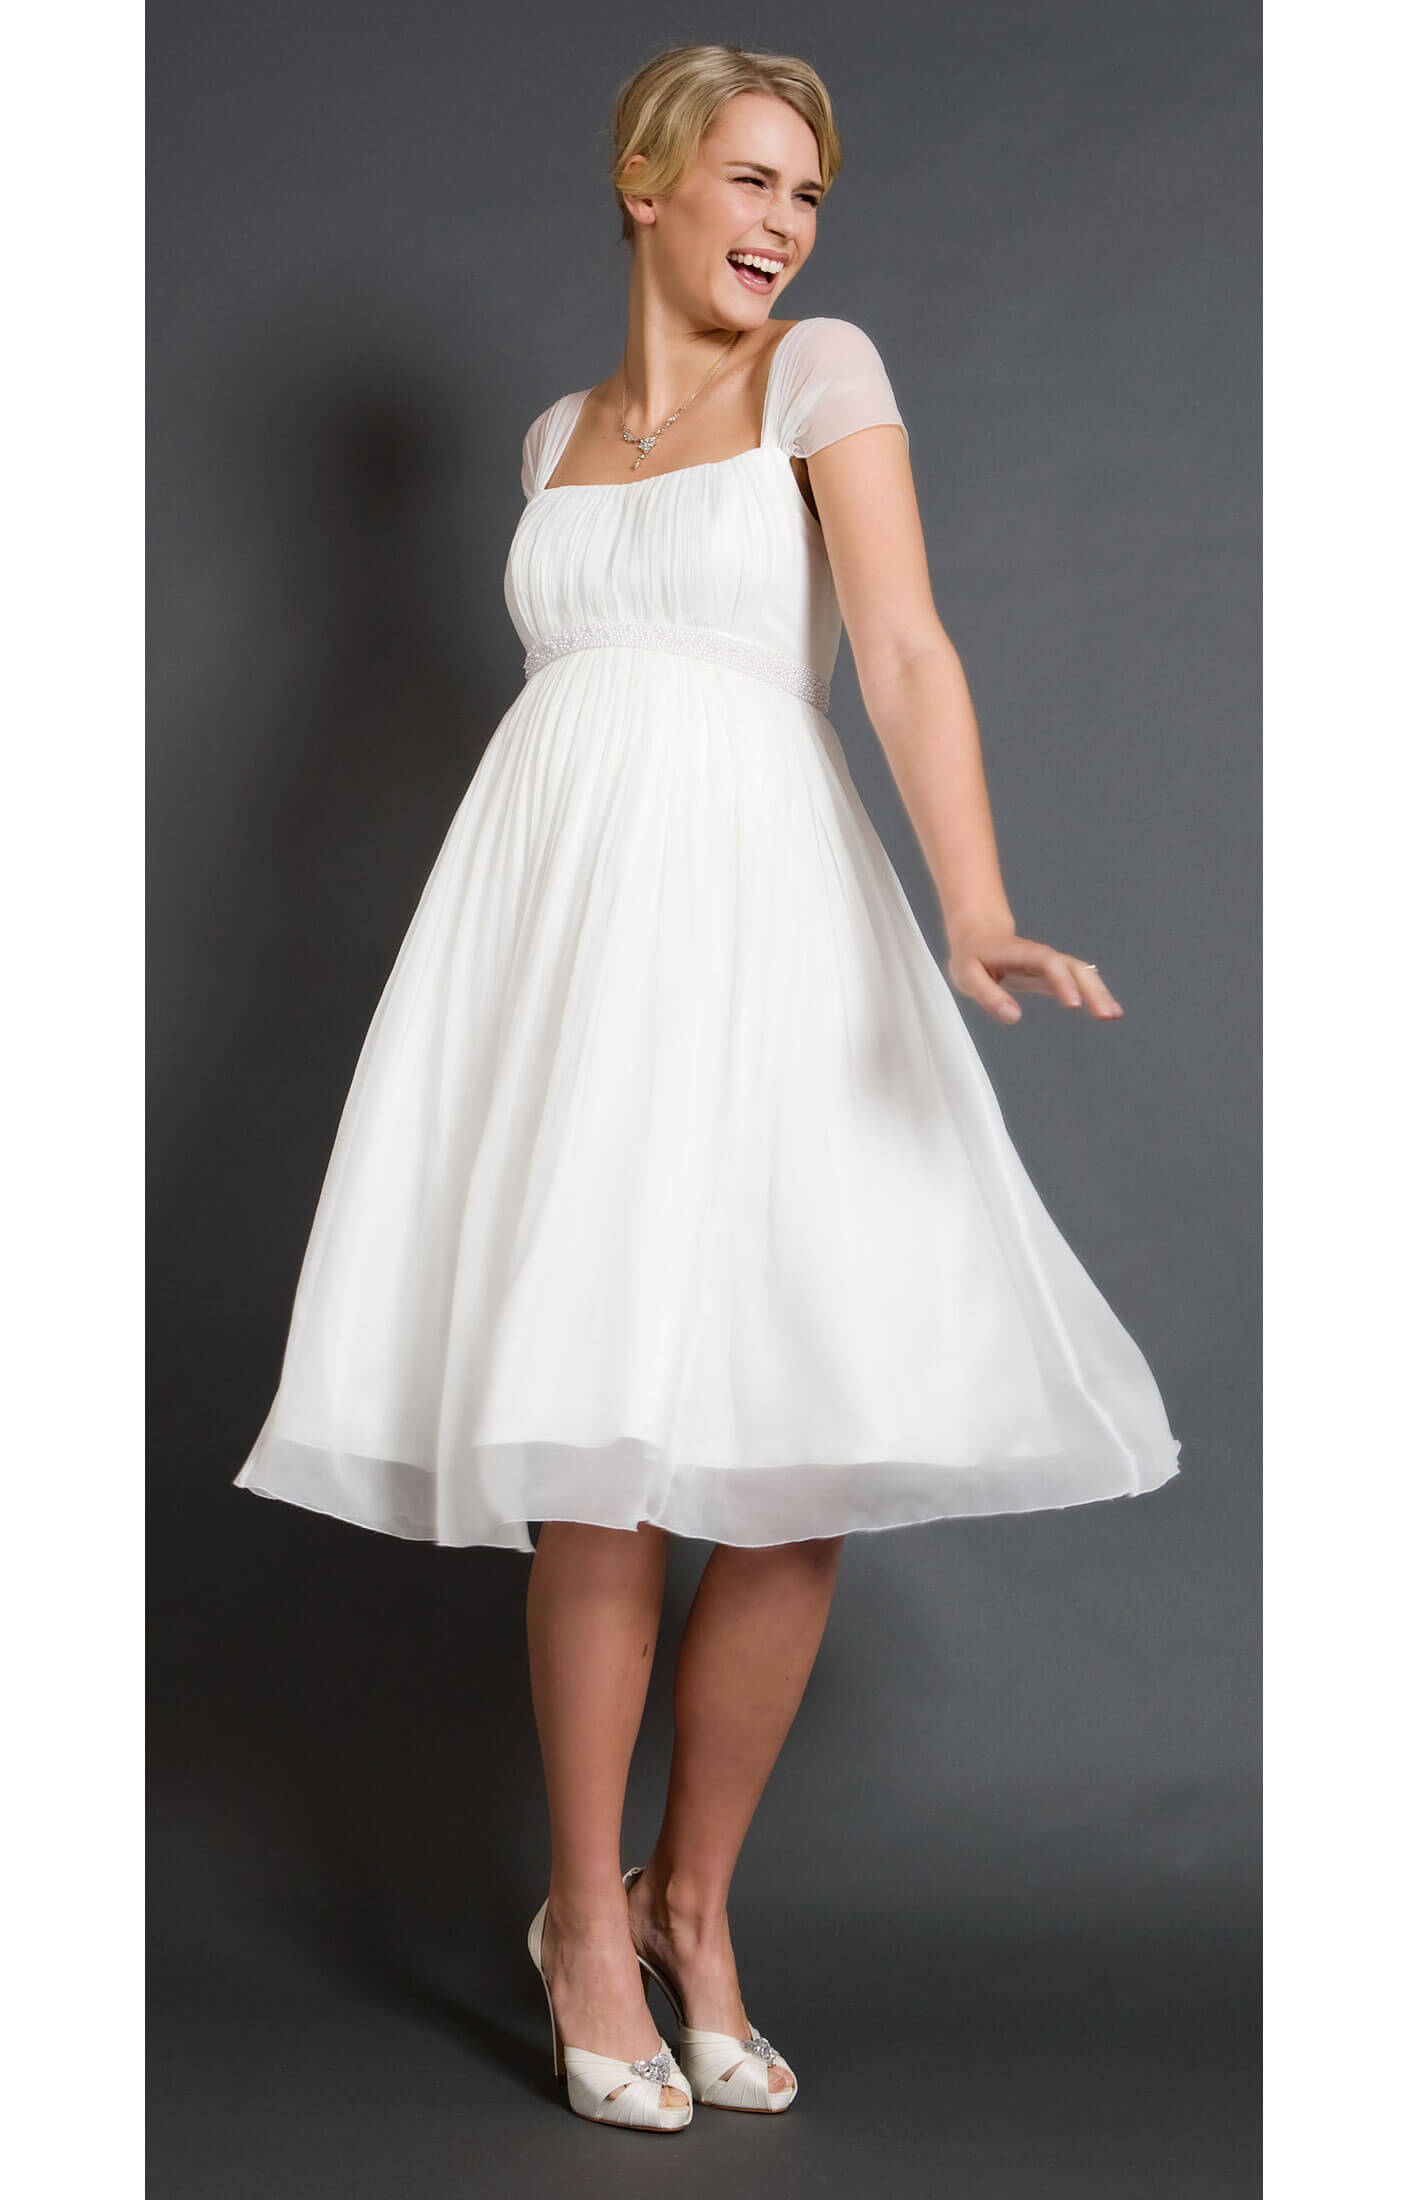 Free shipping on maternity dresses at membhobbdownload-zy.ga Shop formal, lace, cocktail, evening & more maternity dresses from top brands. Free shipping & returns. Skip navigation. Free shipping. Free returns. All the time. See details. Sleeveless Short Sleeve 3/4 Sleeve Long Sleeve.